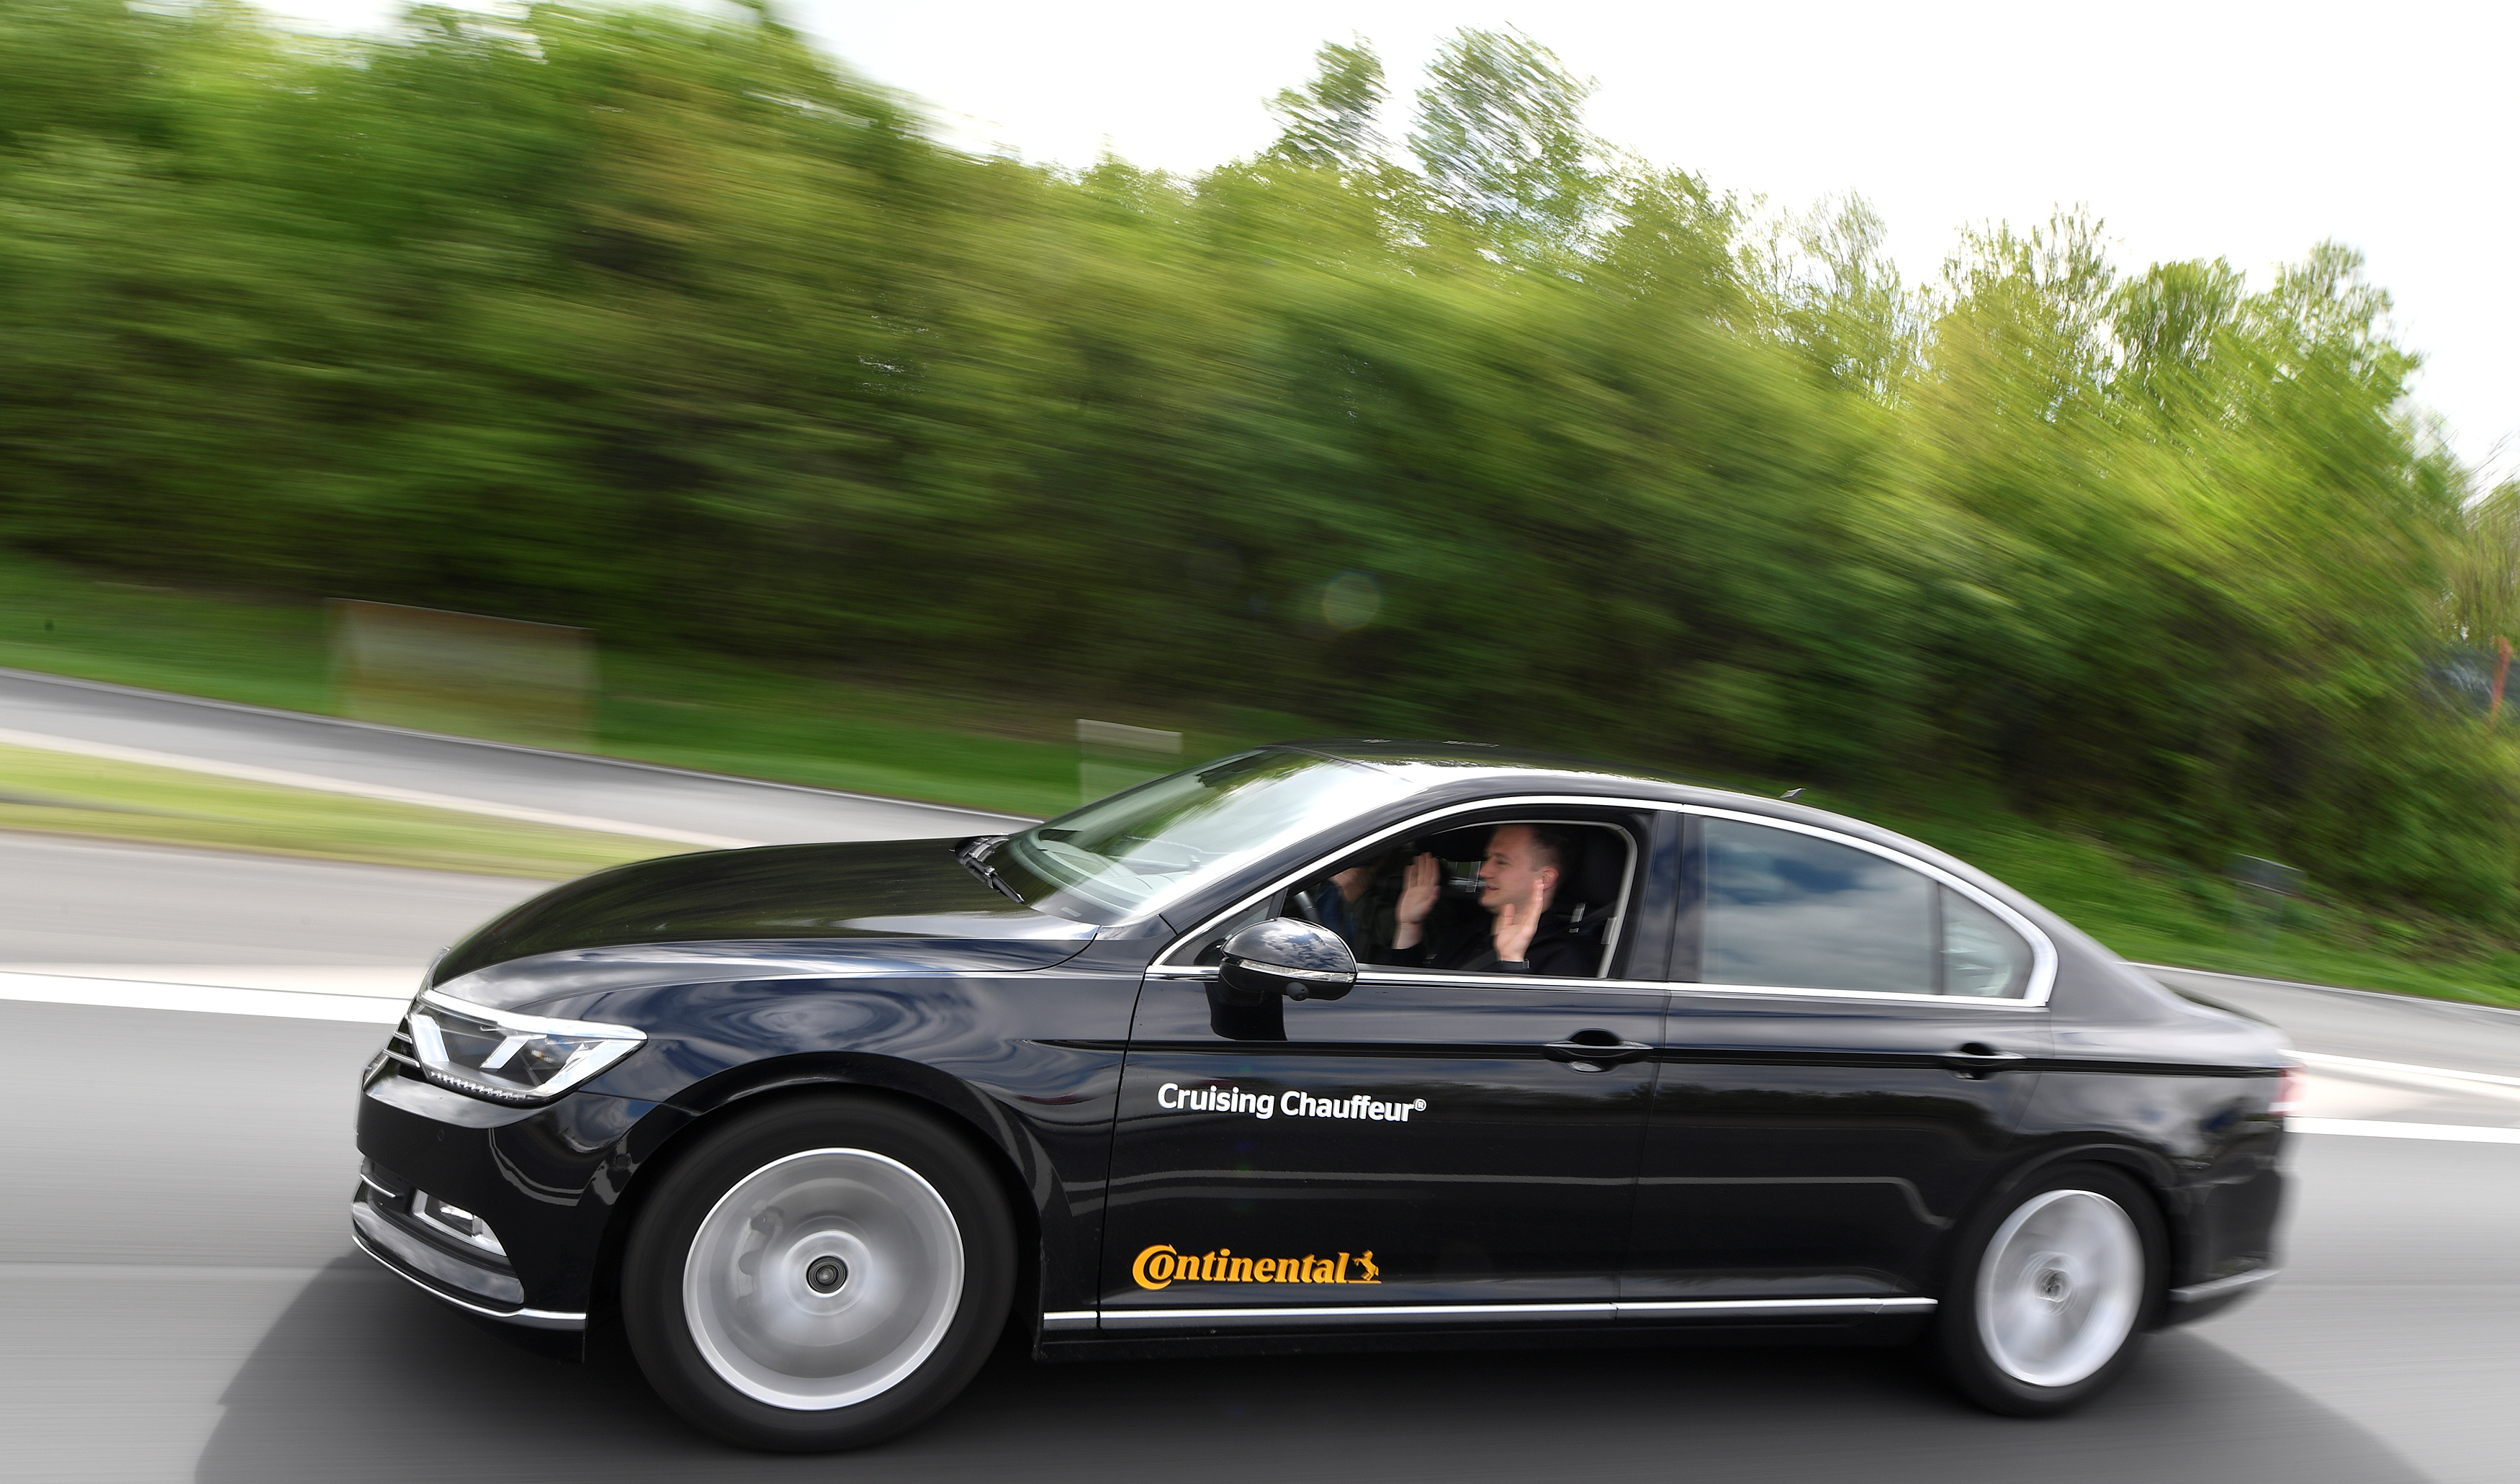 A self-driving car is tested by German company Continental on the A2 motorway in Hanover, Germany April 25, 2018. REUTERS/Fabian Bimmer - RC117EDDD000